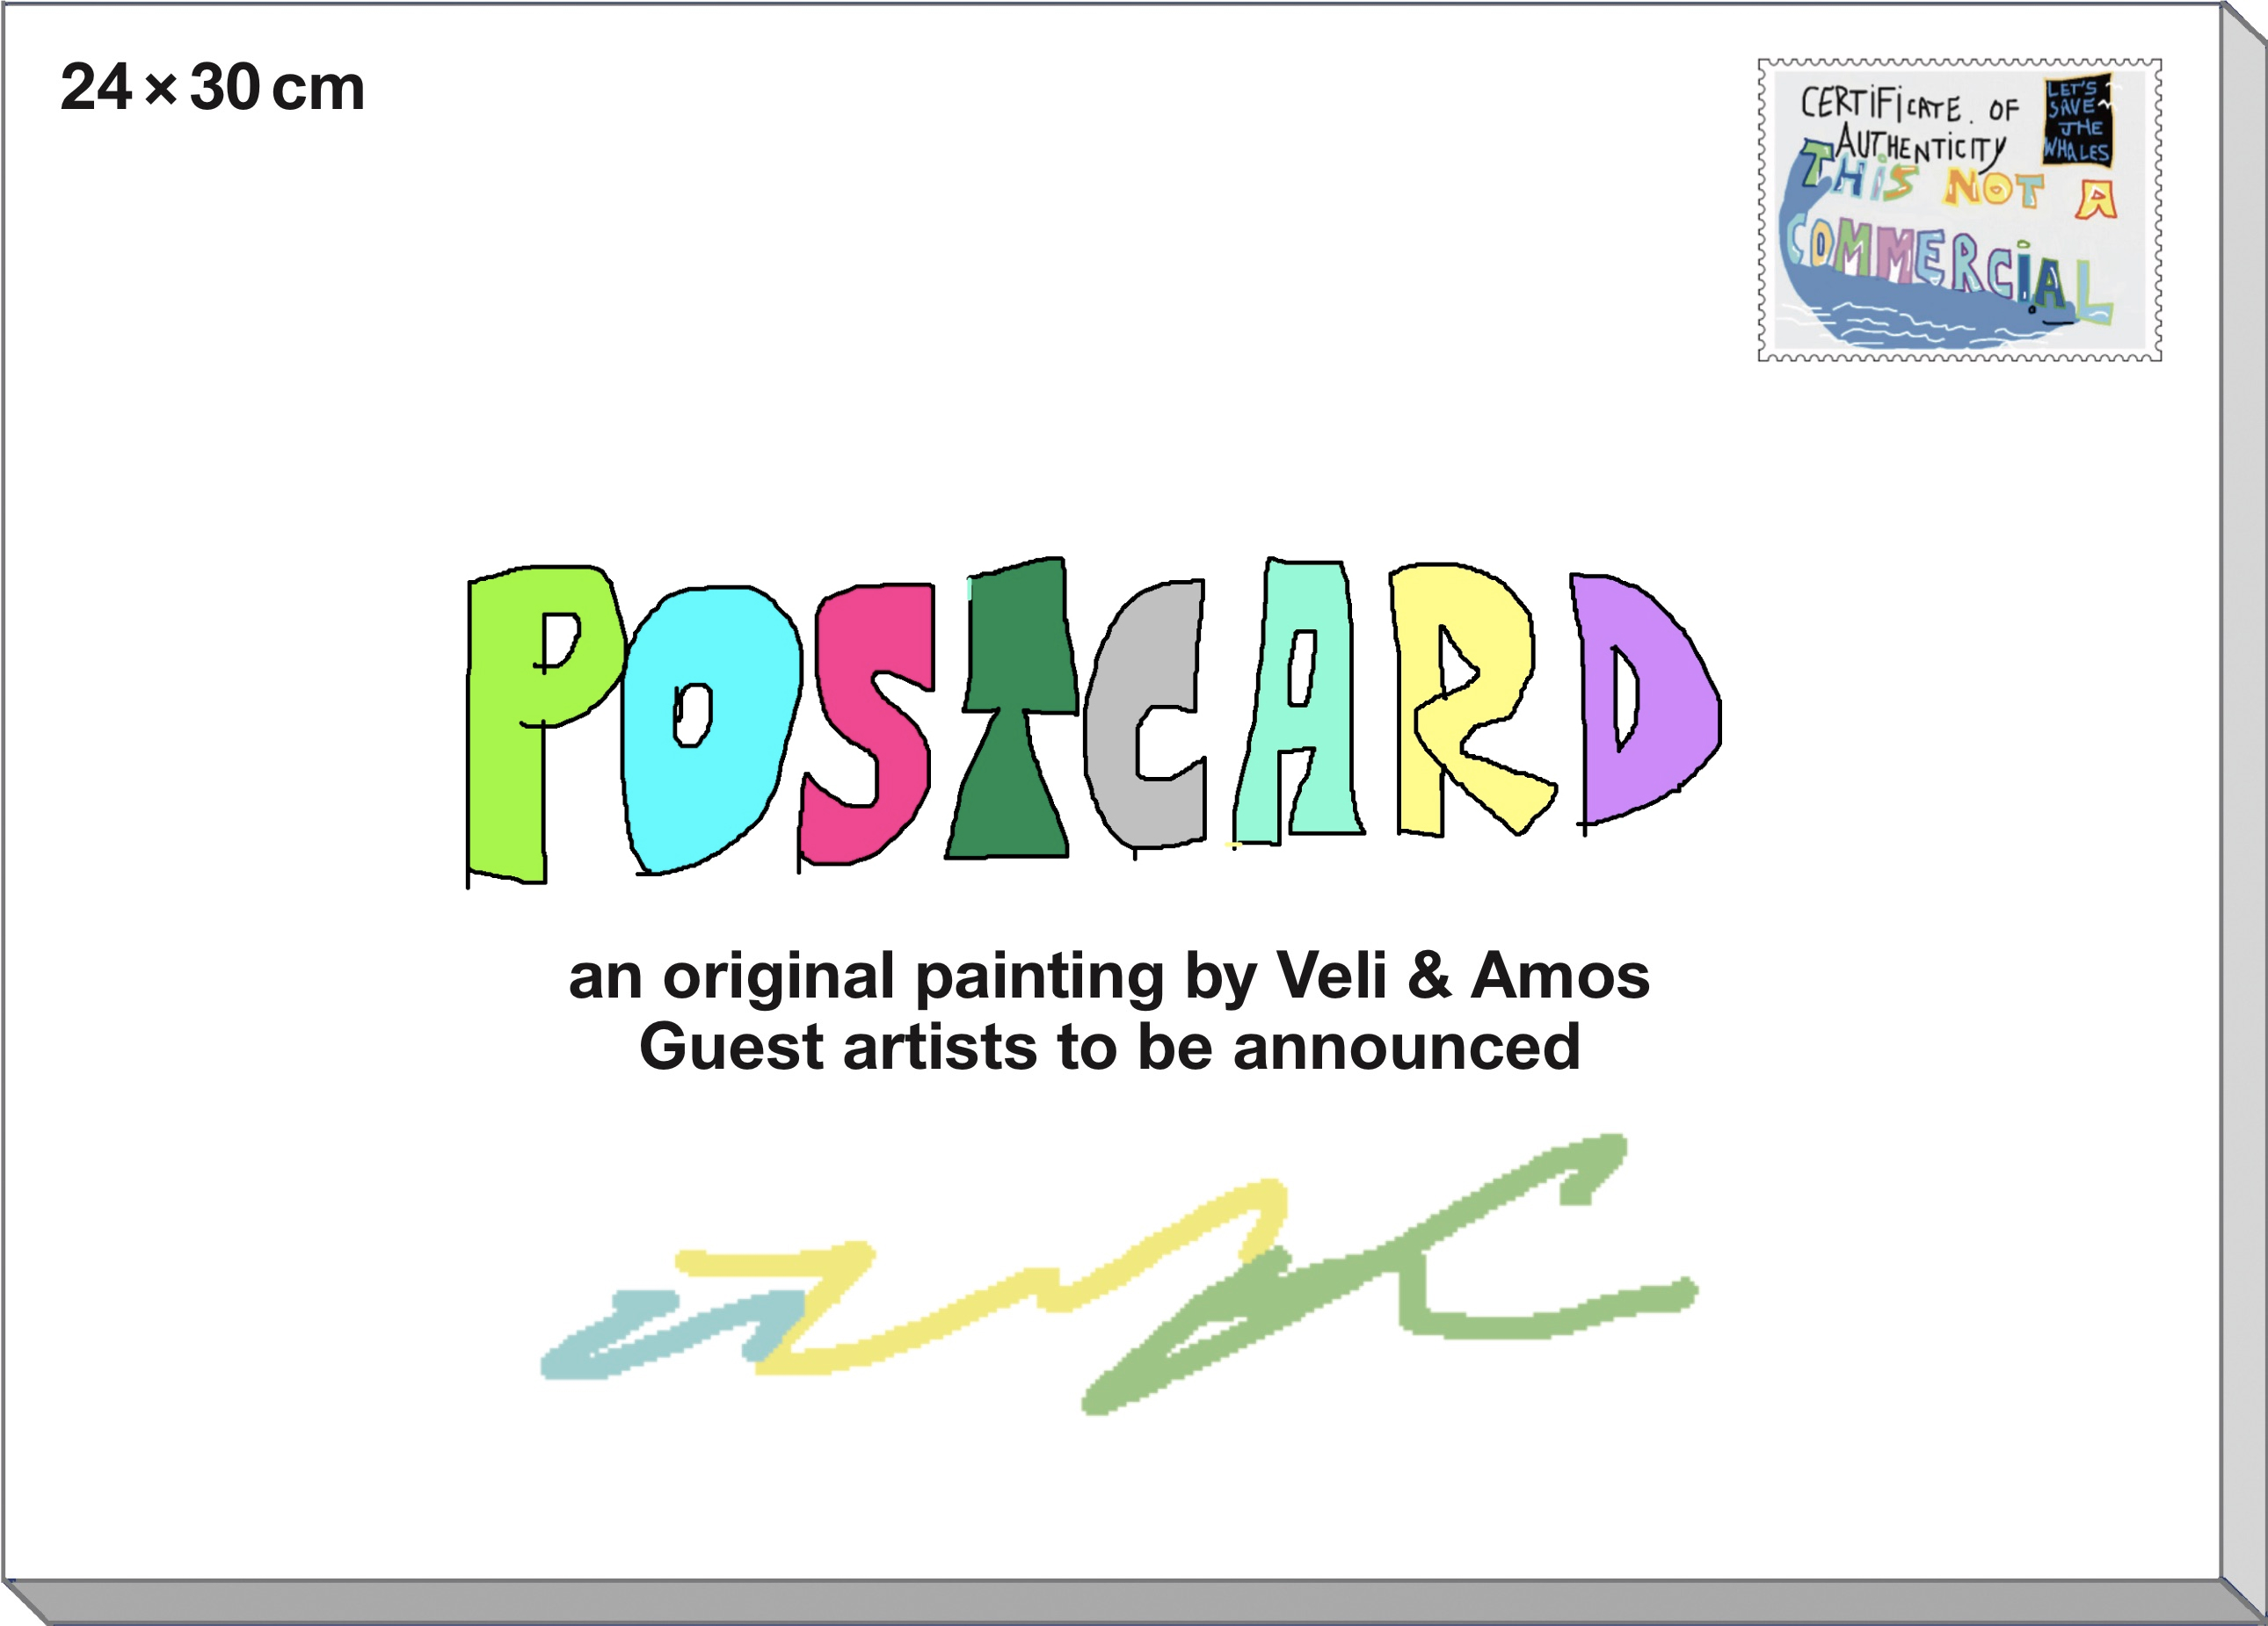 ORDER - an original painting by Veli & Amos. Guest artists to be announced